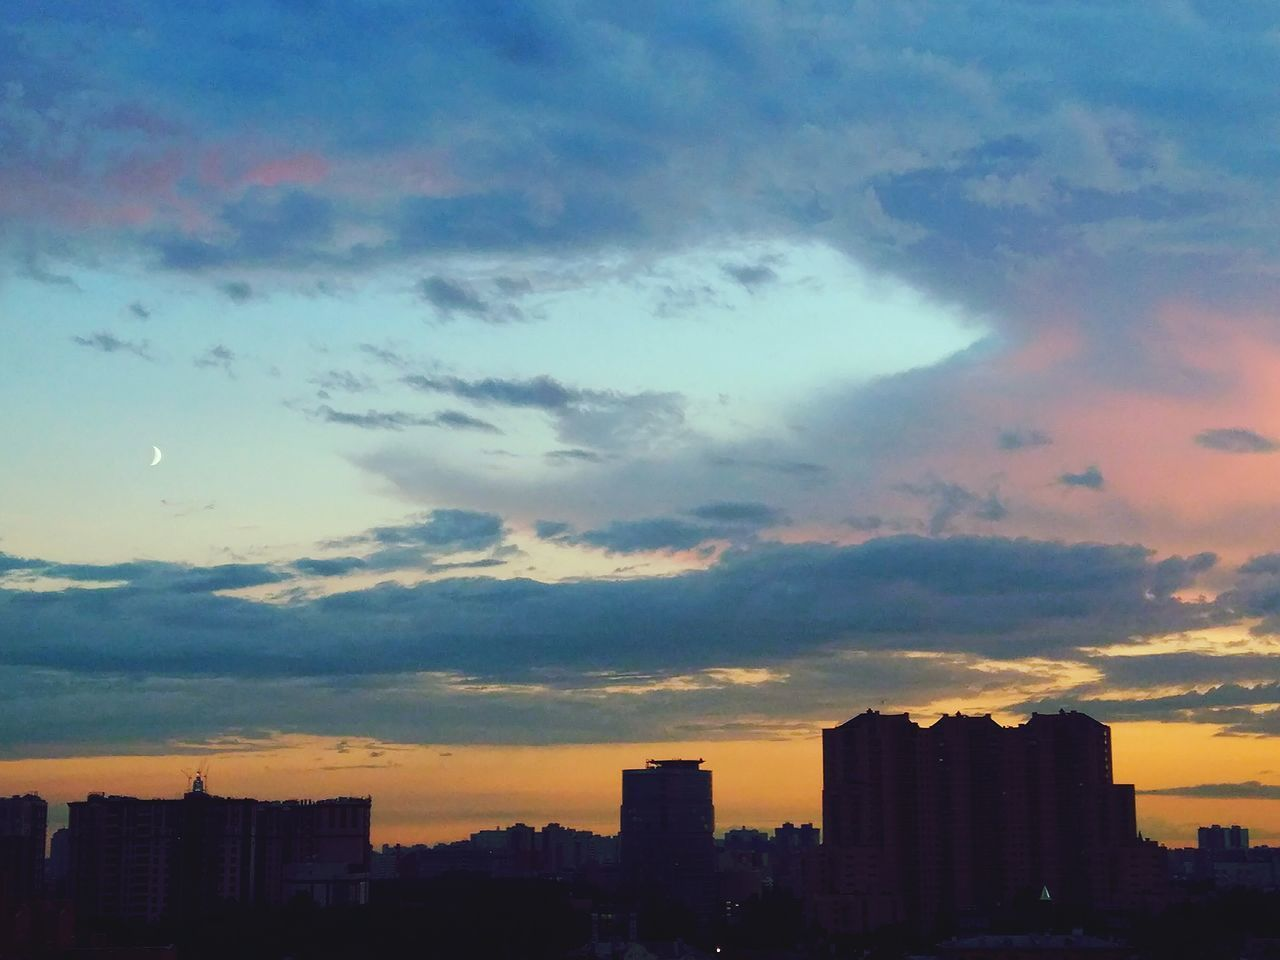 building exterior, architecture, sunset, skyscraper, modern, built structure, city, cityscape, sky, cloud - sky, no people, silhouette, outdoors, urban skyline, day